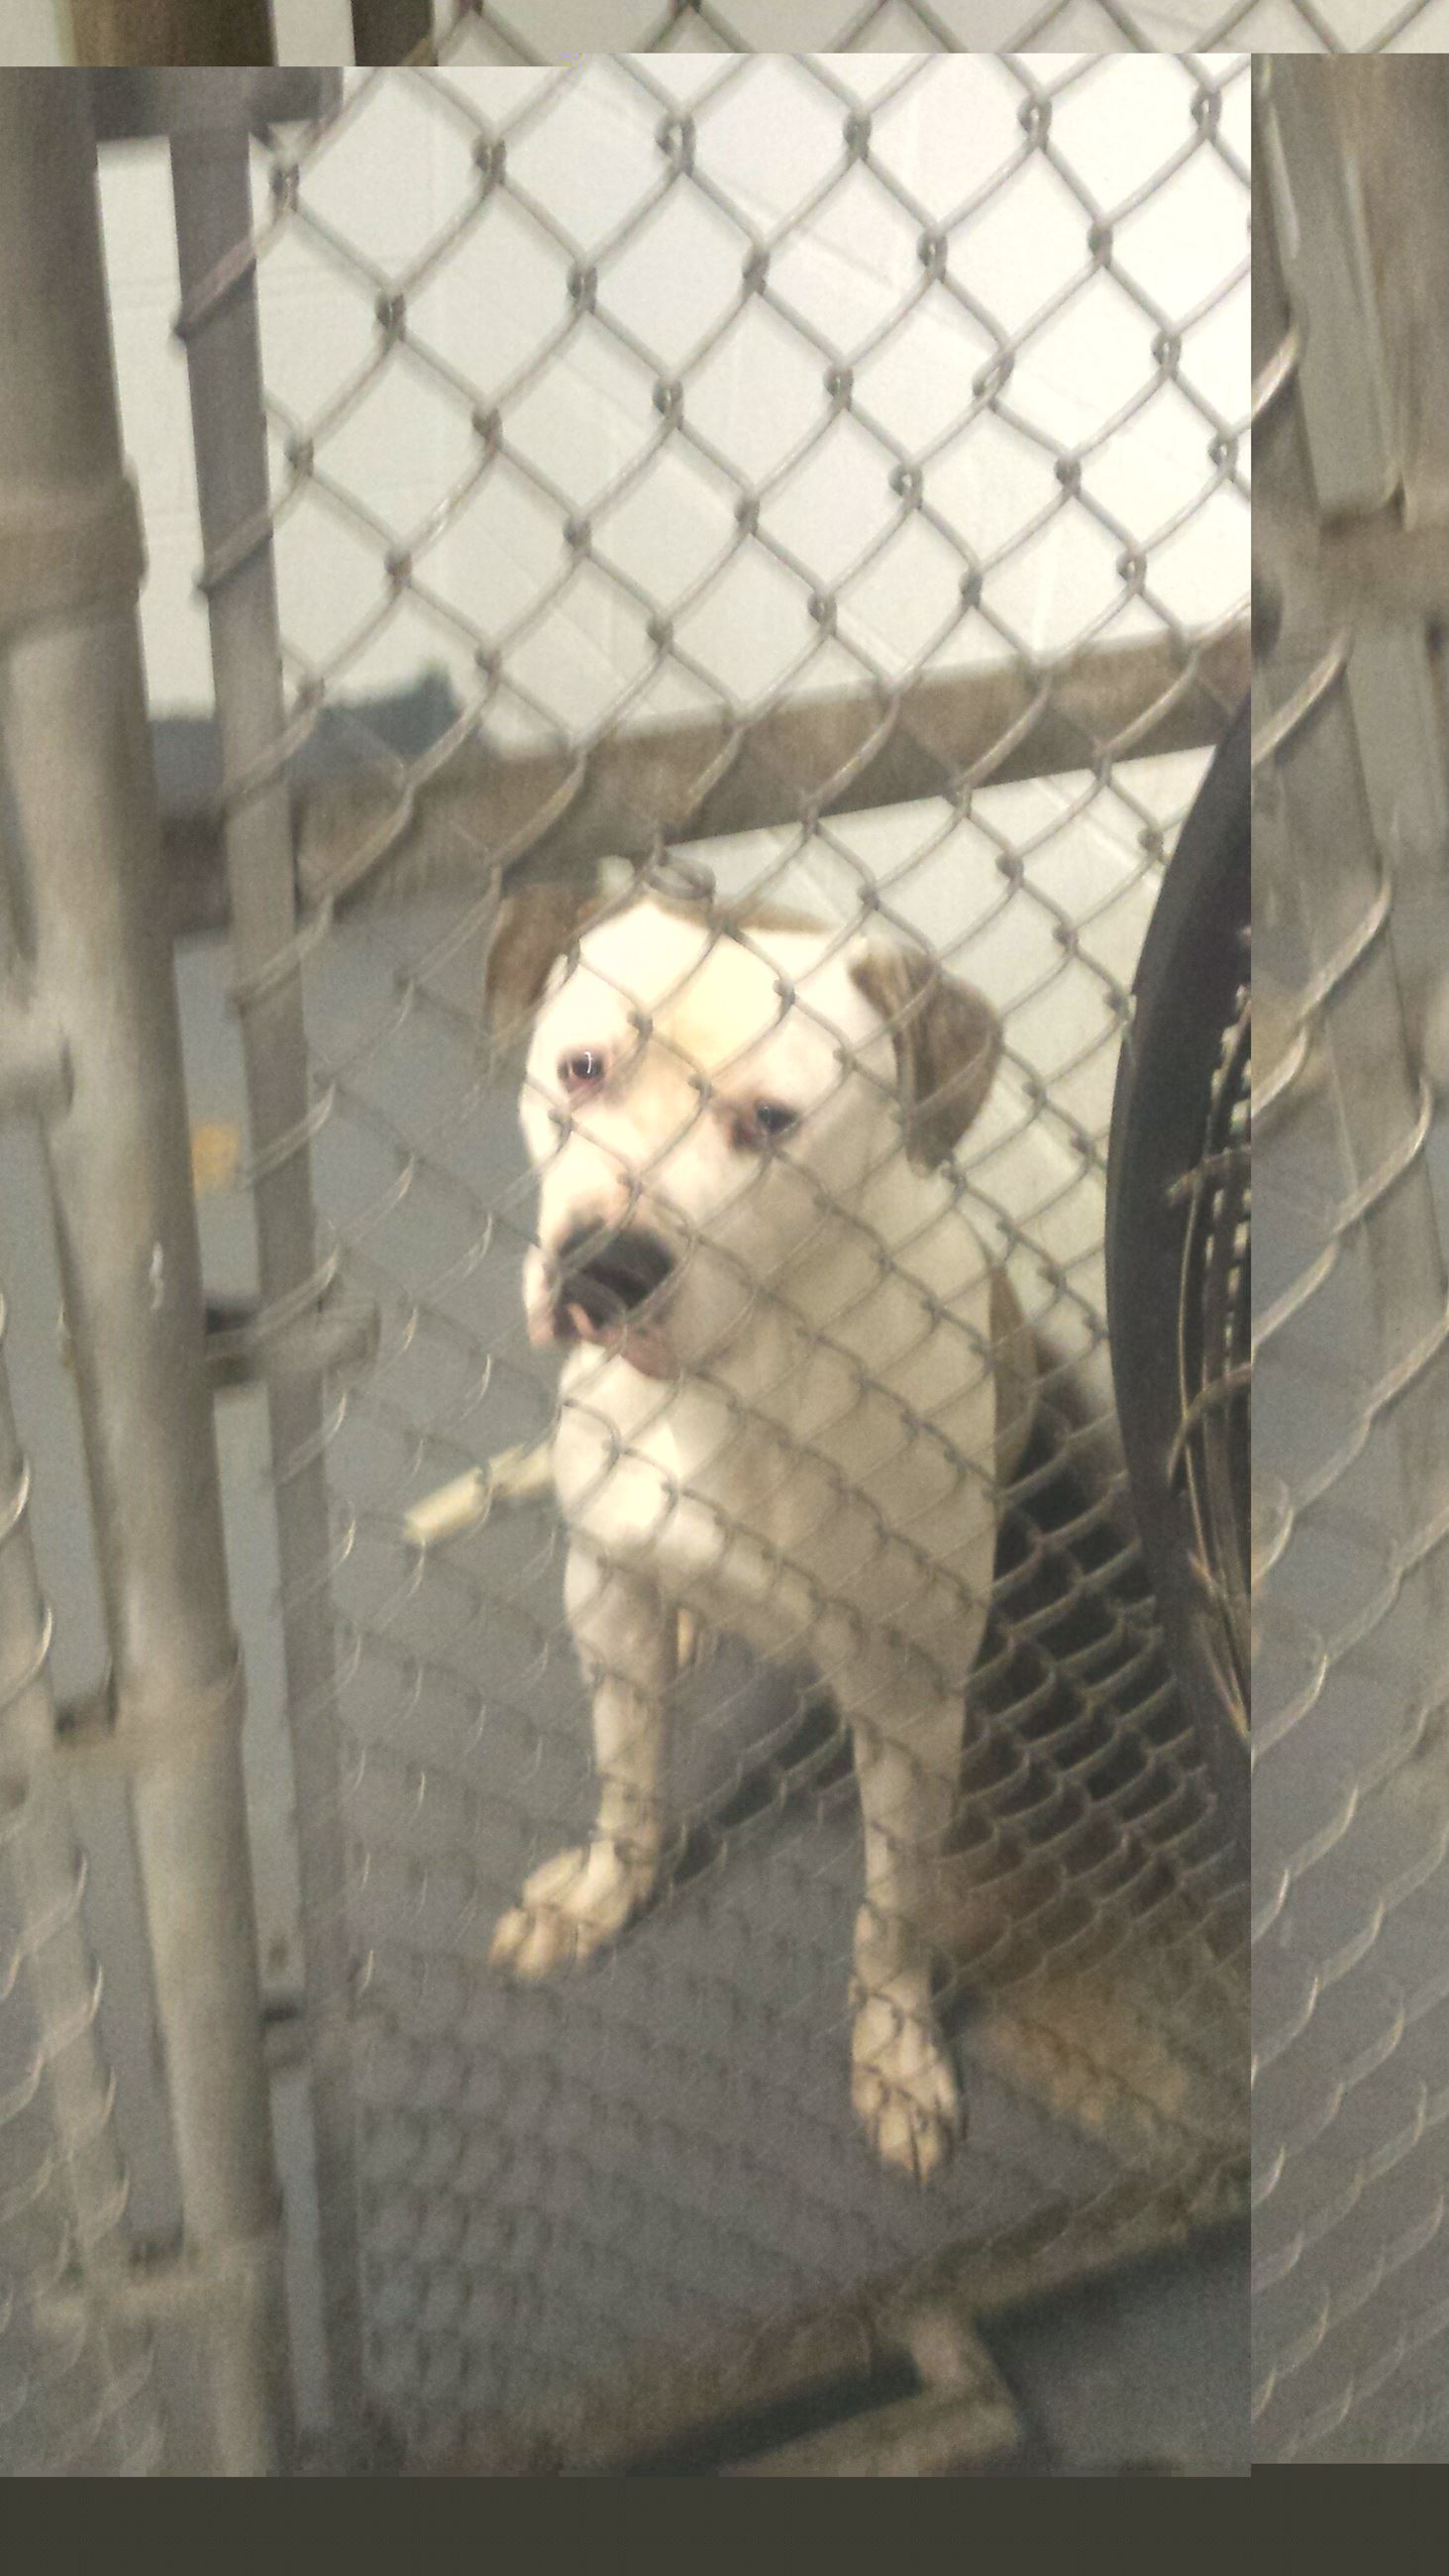 A white and grey brindle patterned male Staffordshire Terrier in a chain link kennel